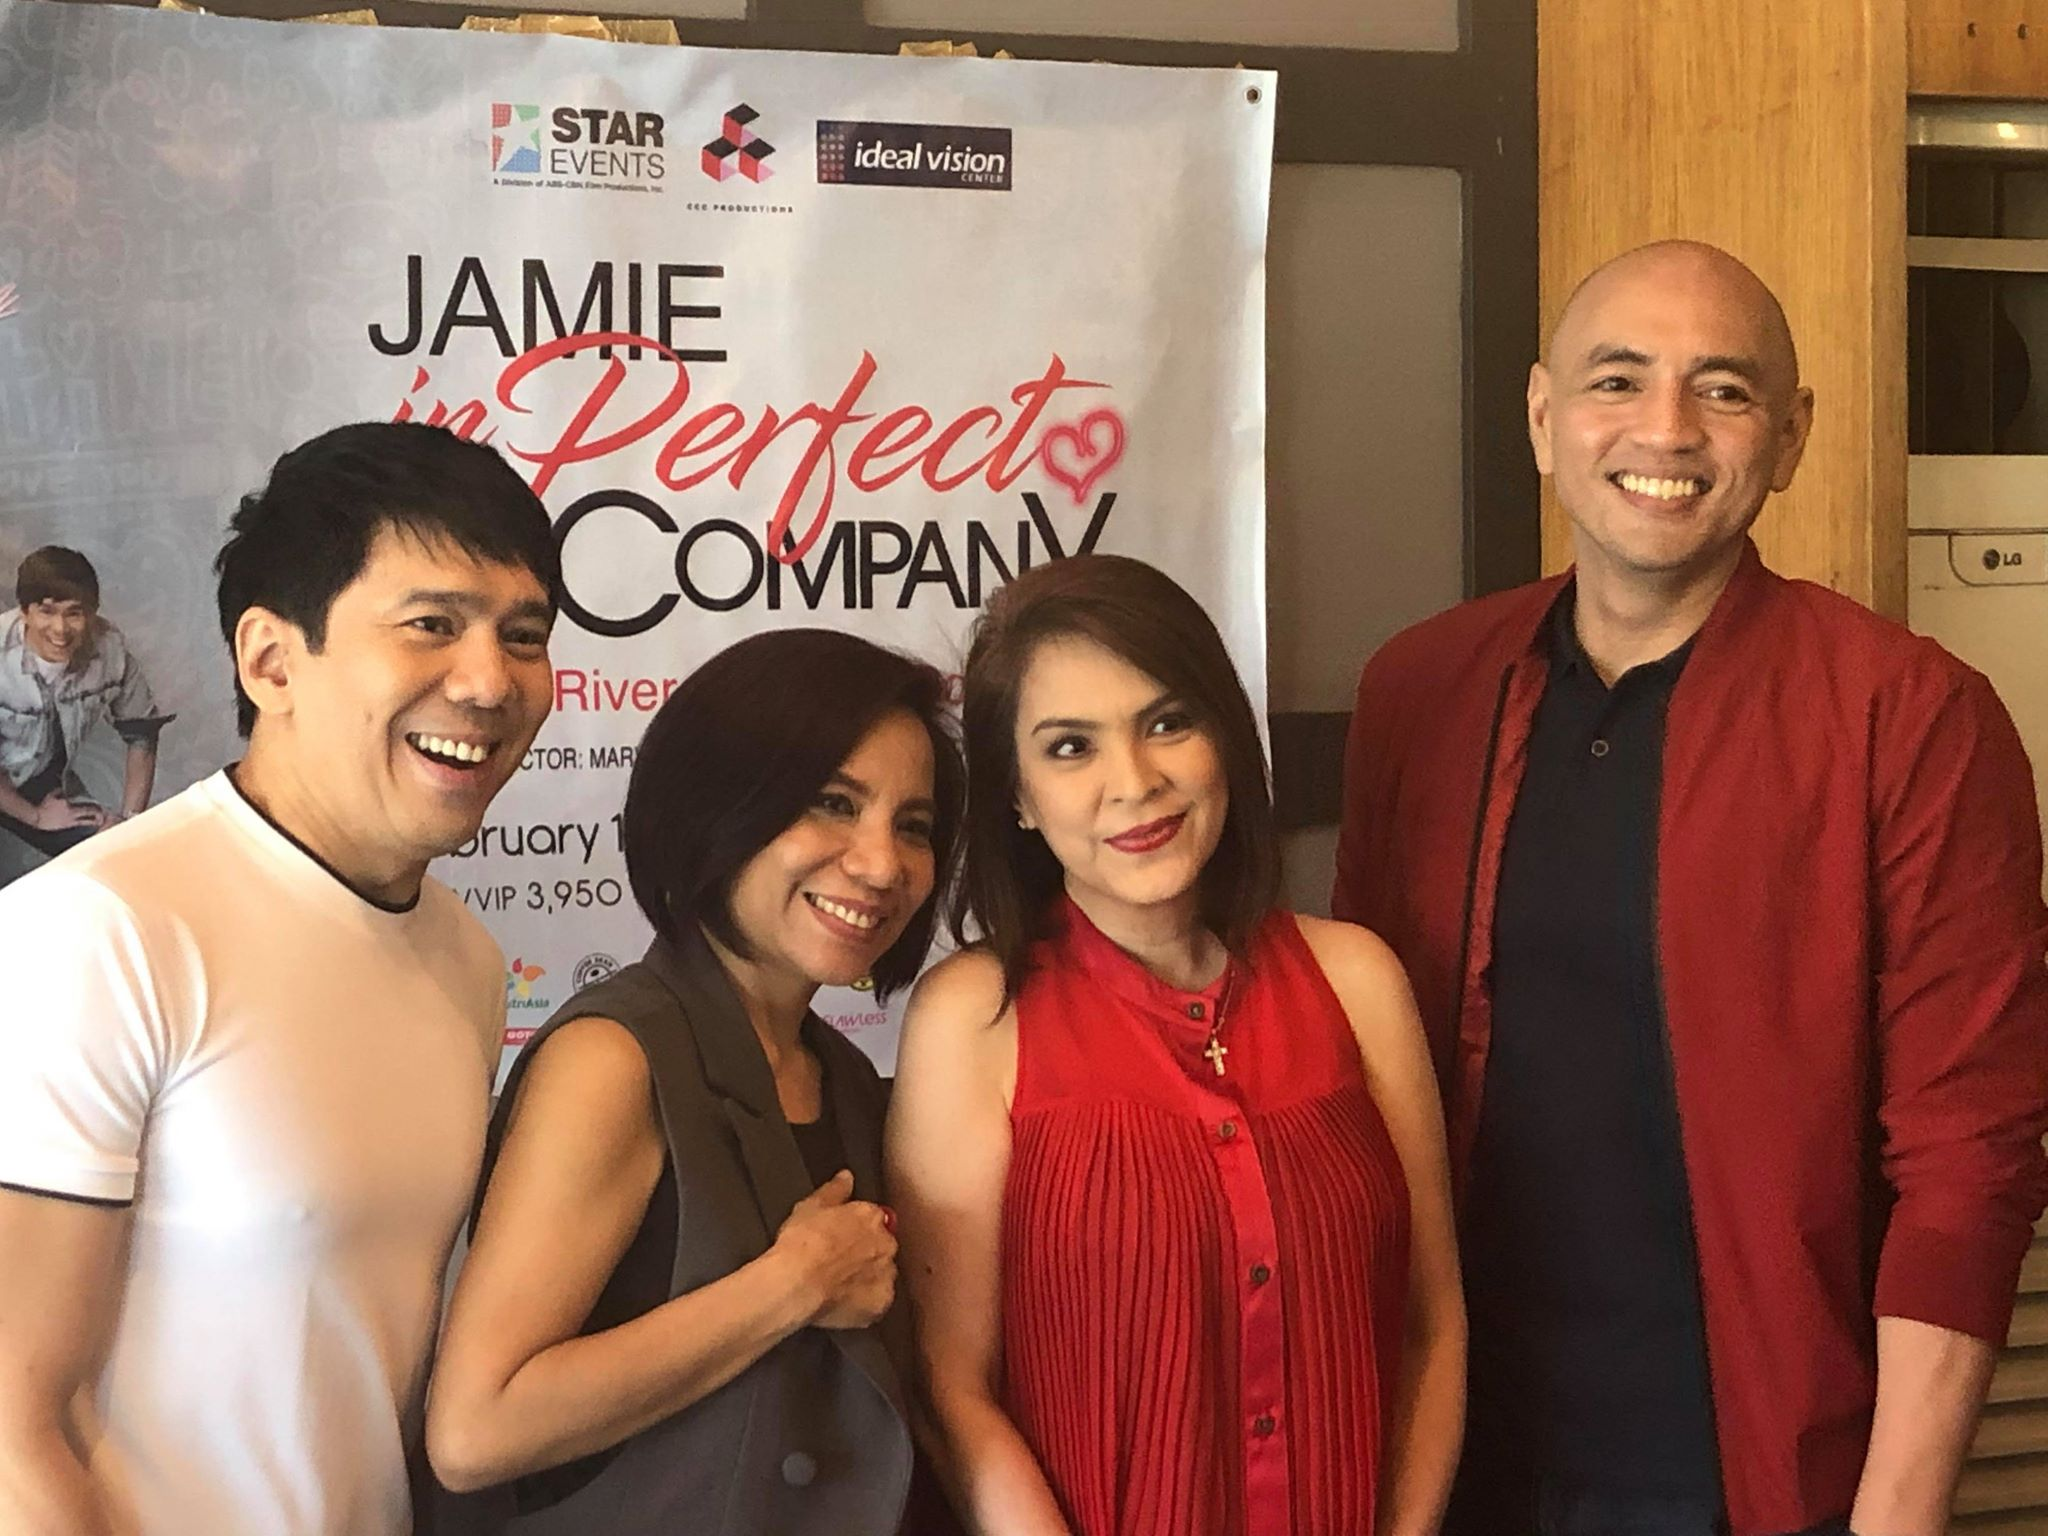 PERFECT COMPANY. Jamie Rivera and members of the Company. Photo from ABS-CBN PR